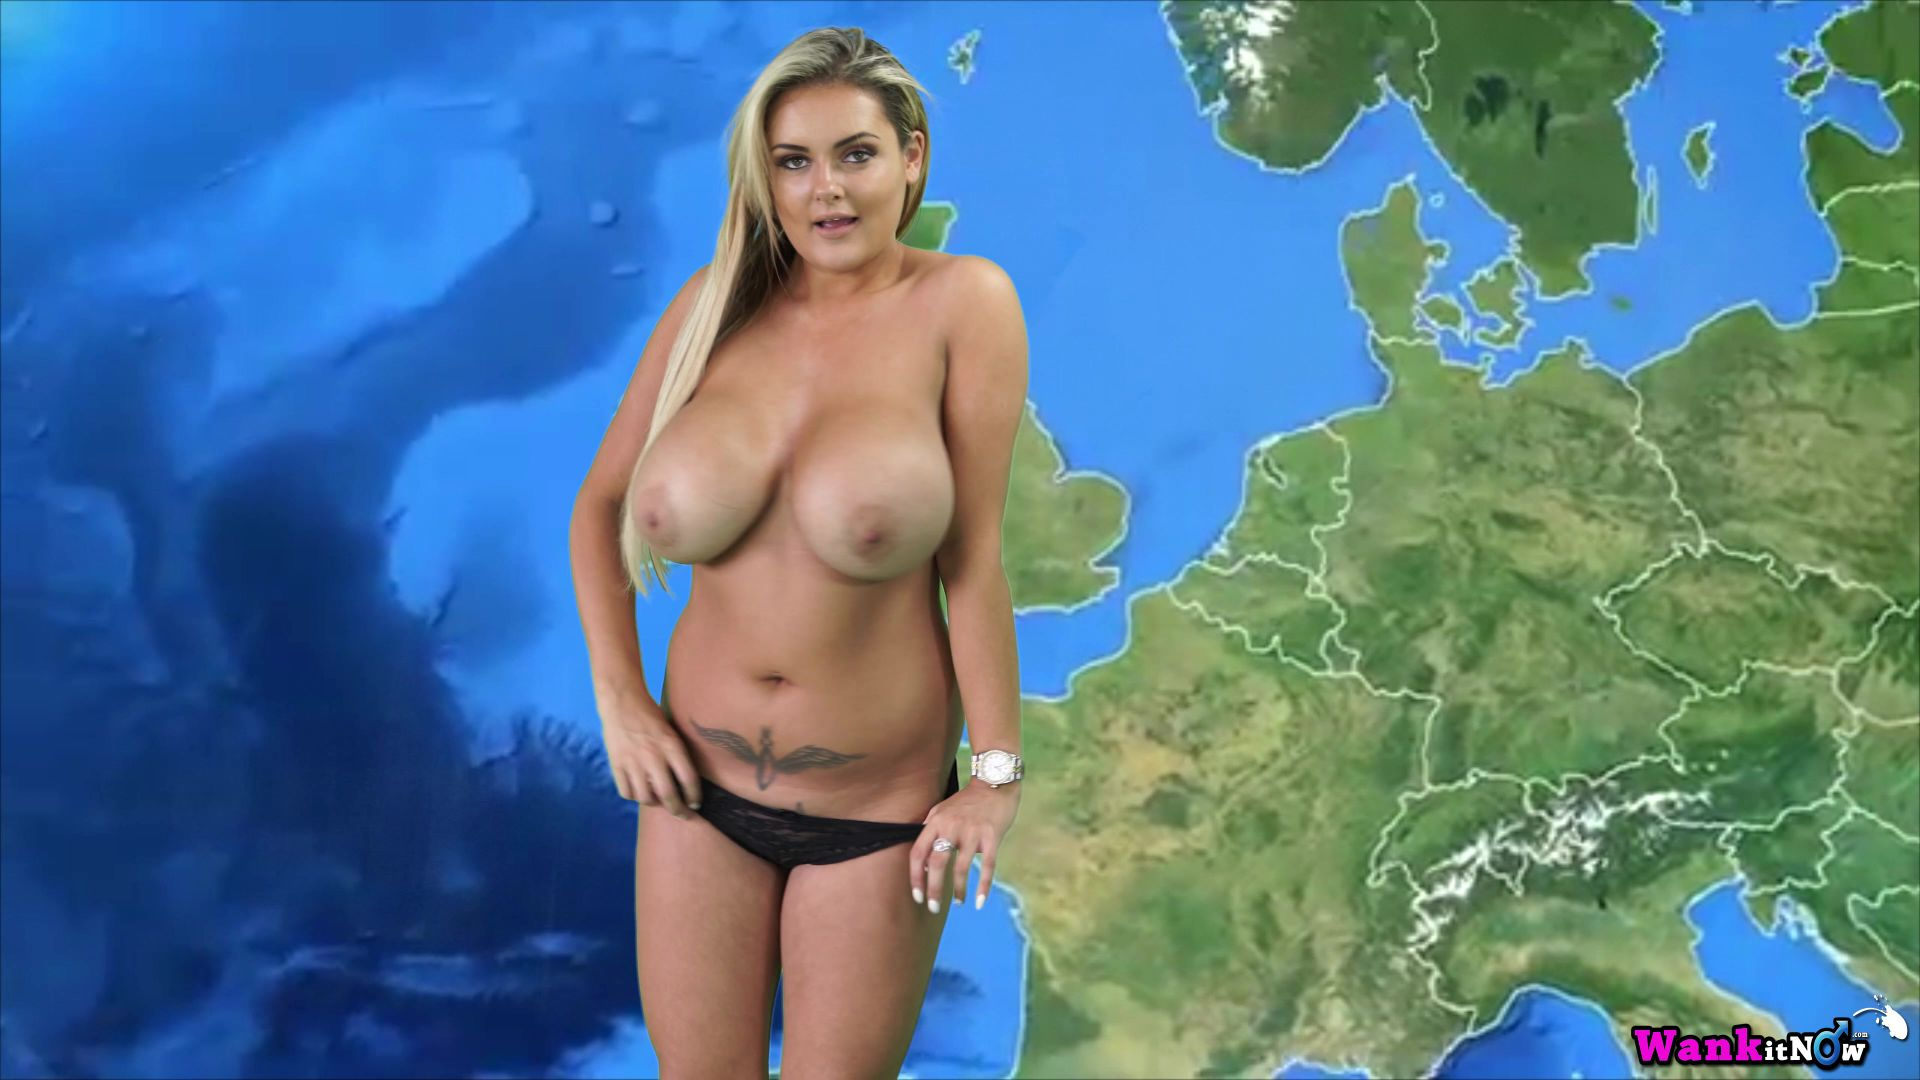 weather clip girl nude